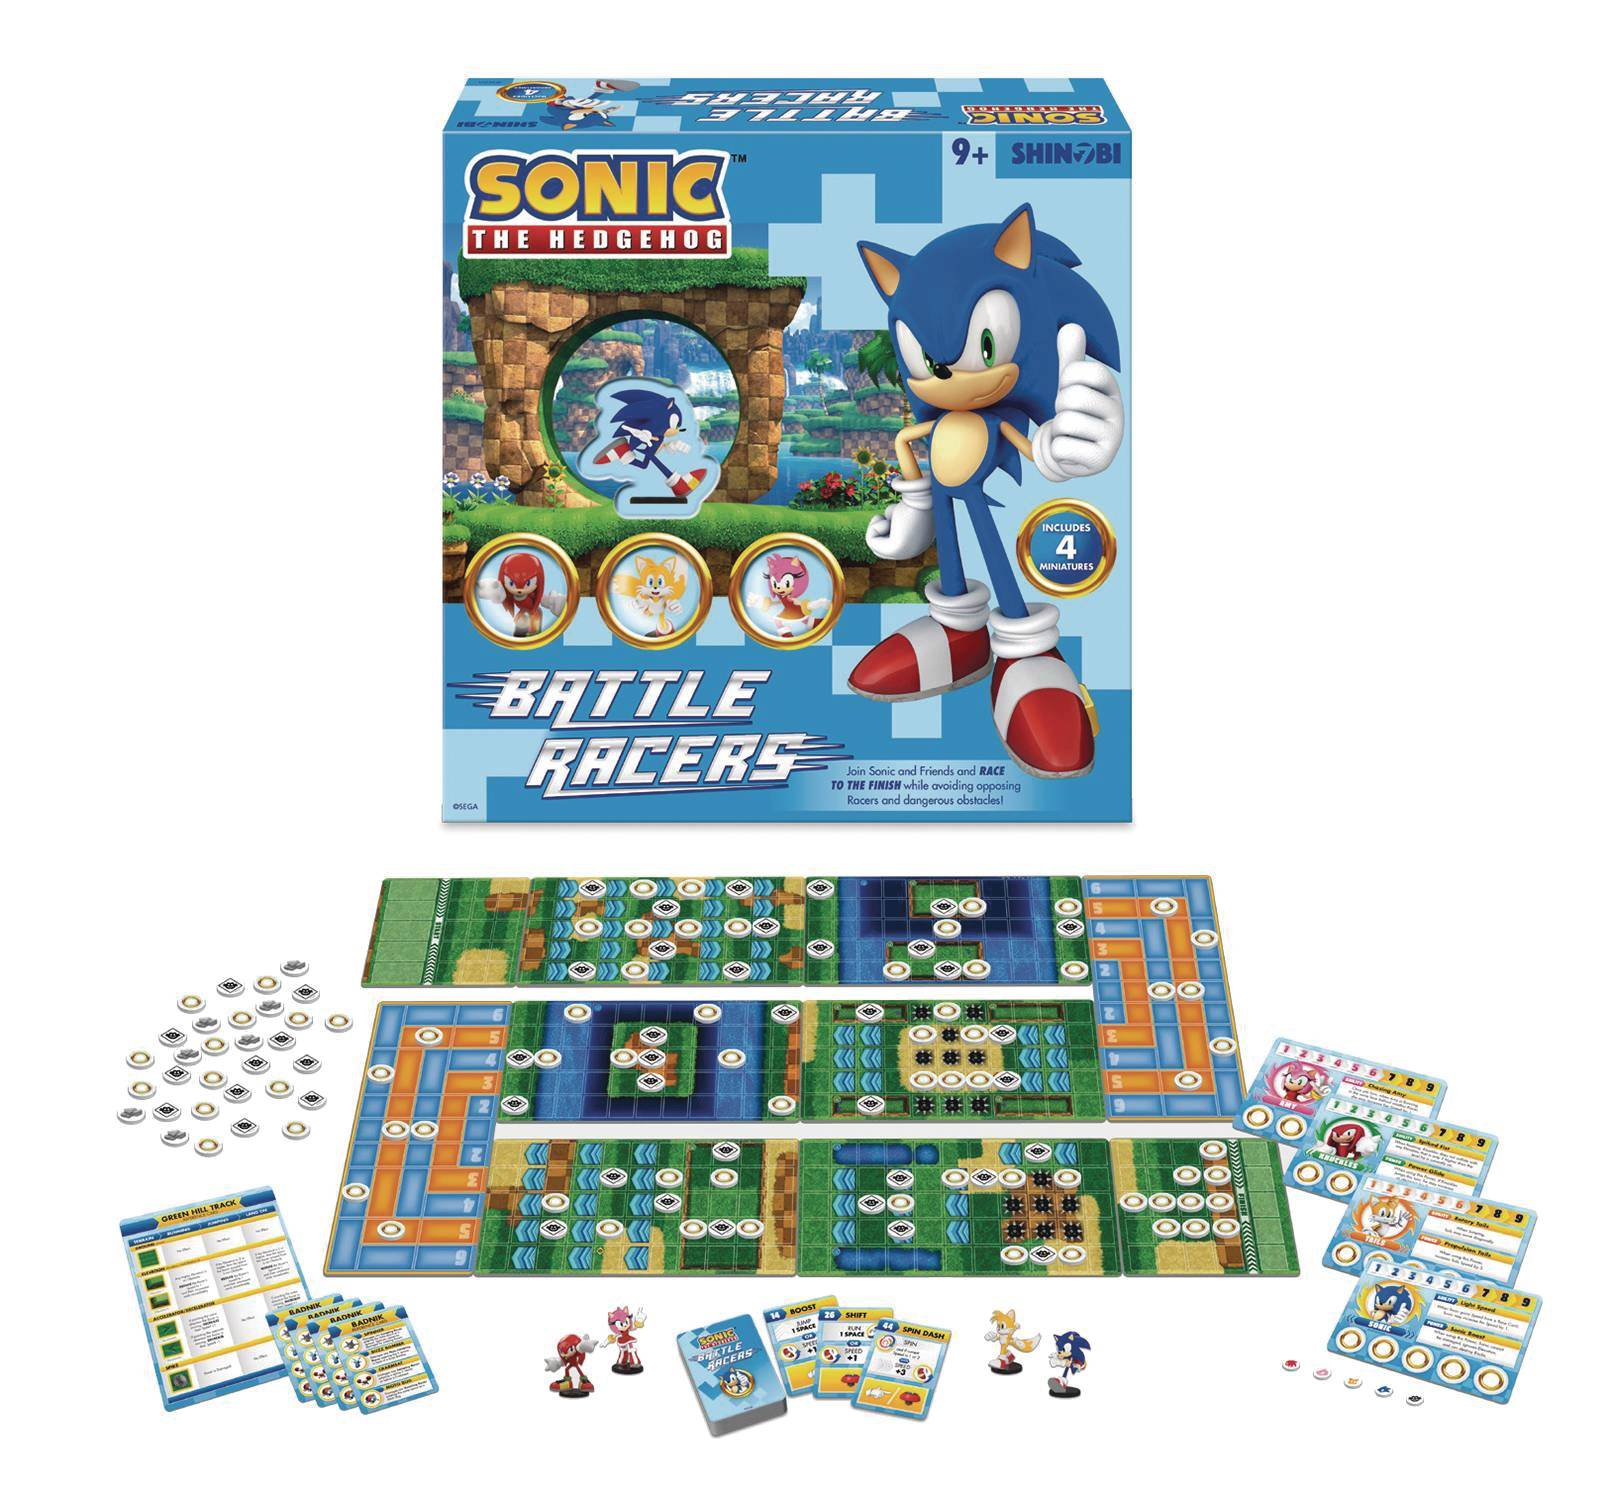 SONIC THE HEDGEHOG BATTLE RACERS BOARDGAME